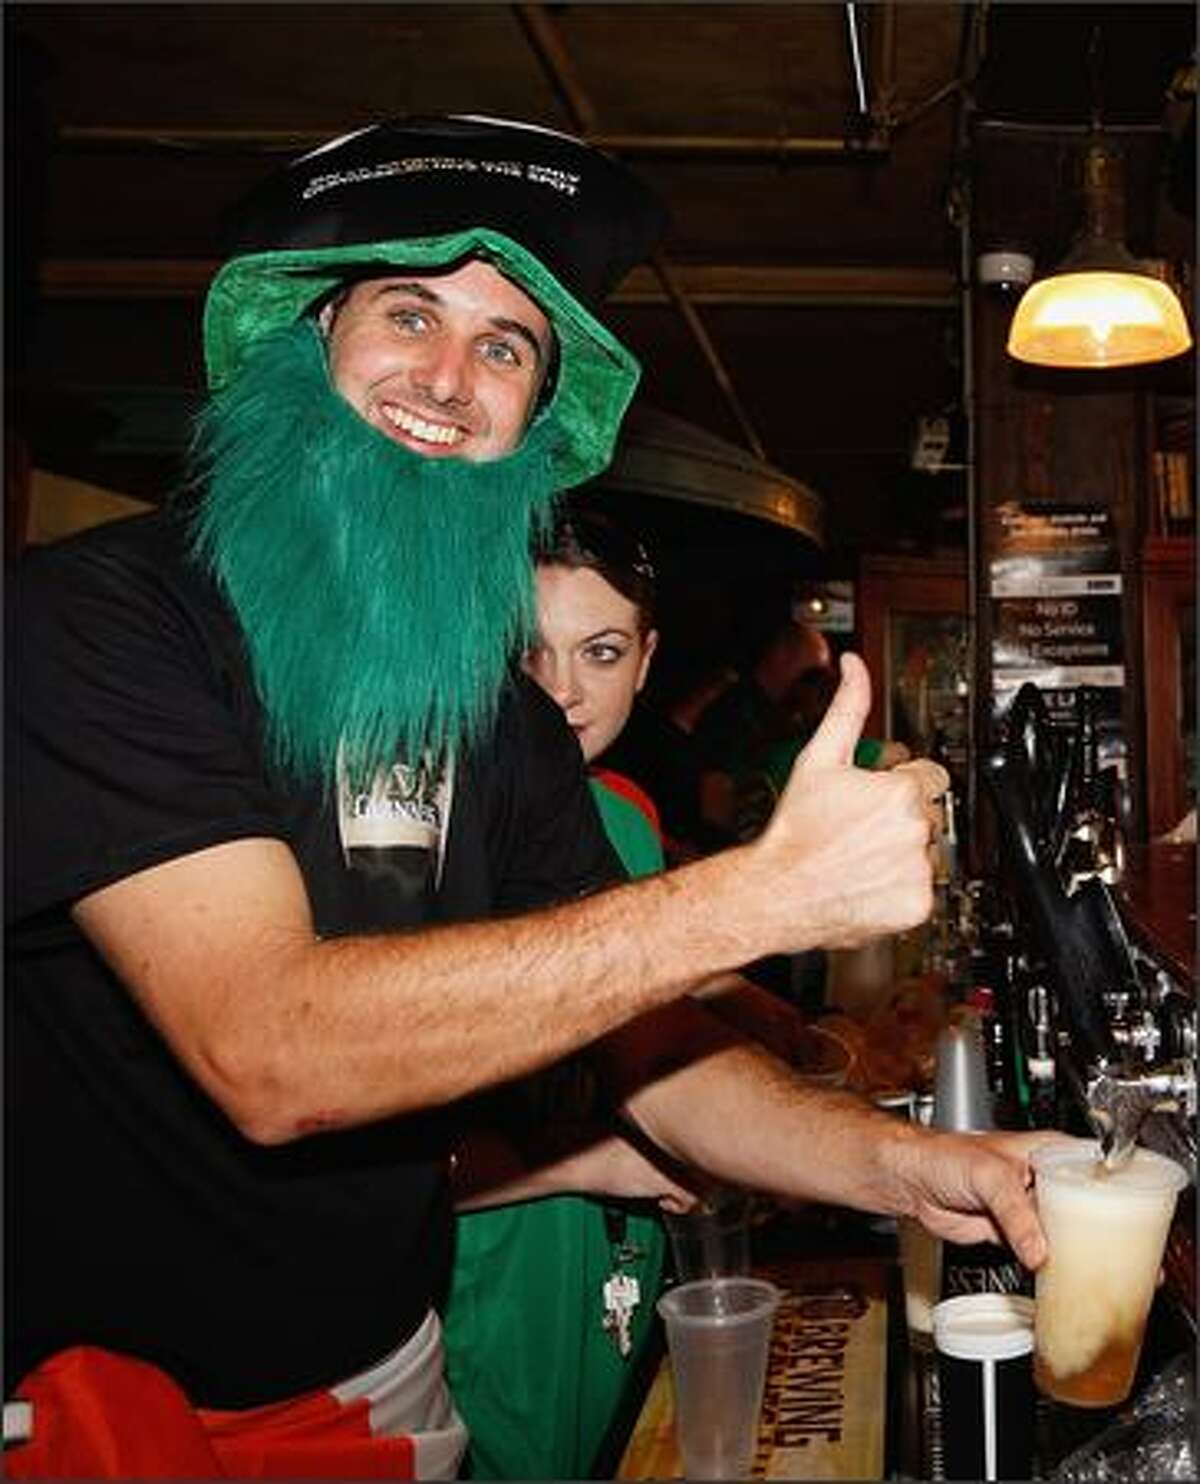 Connor Fidel pours pints of Guinness on St. Patrick's Day at the Muddy Farmer Bar in Auckland, New Zealand.